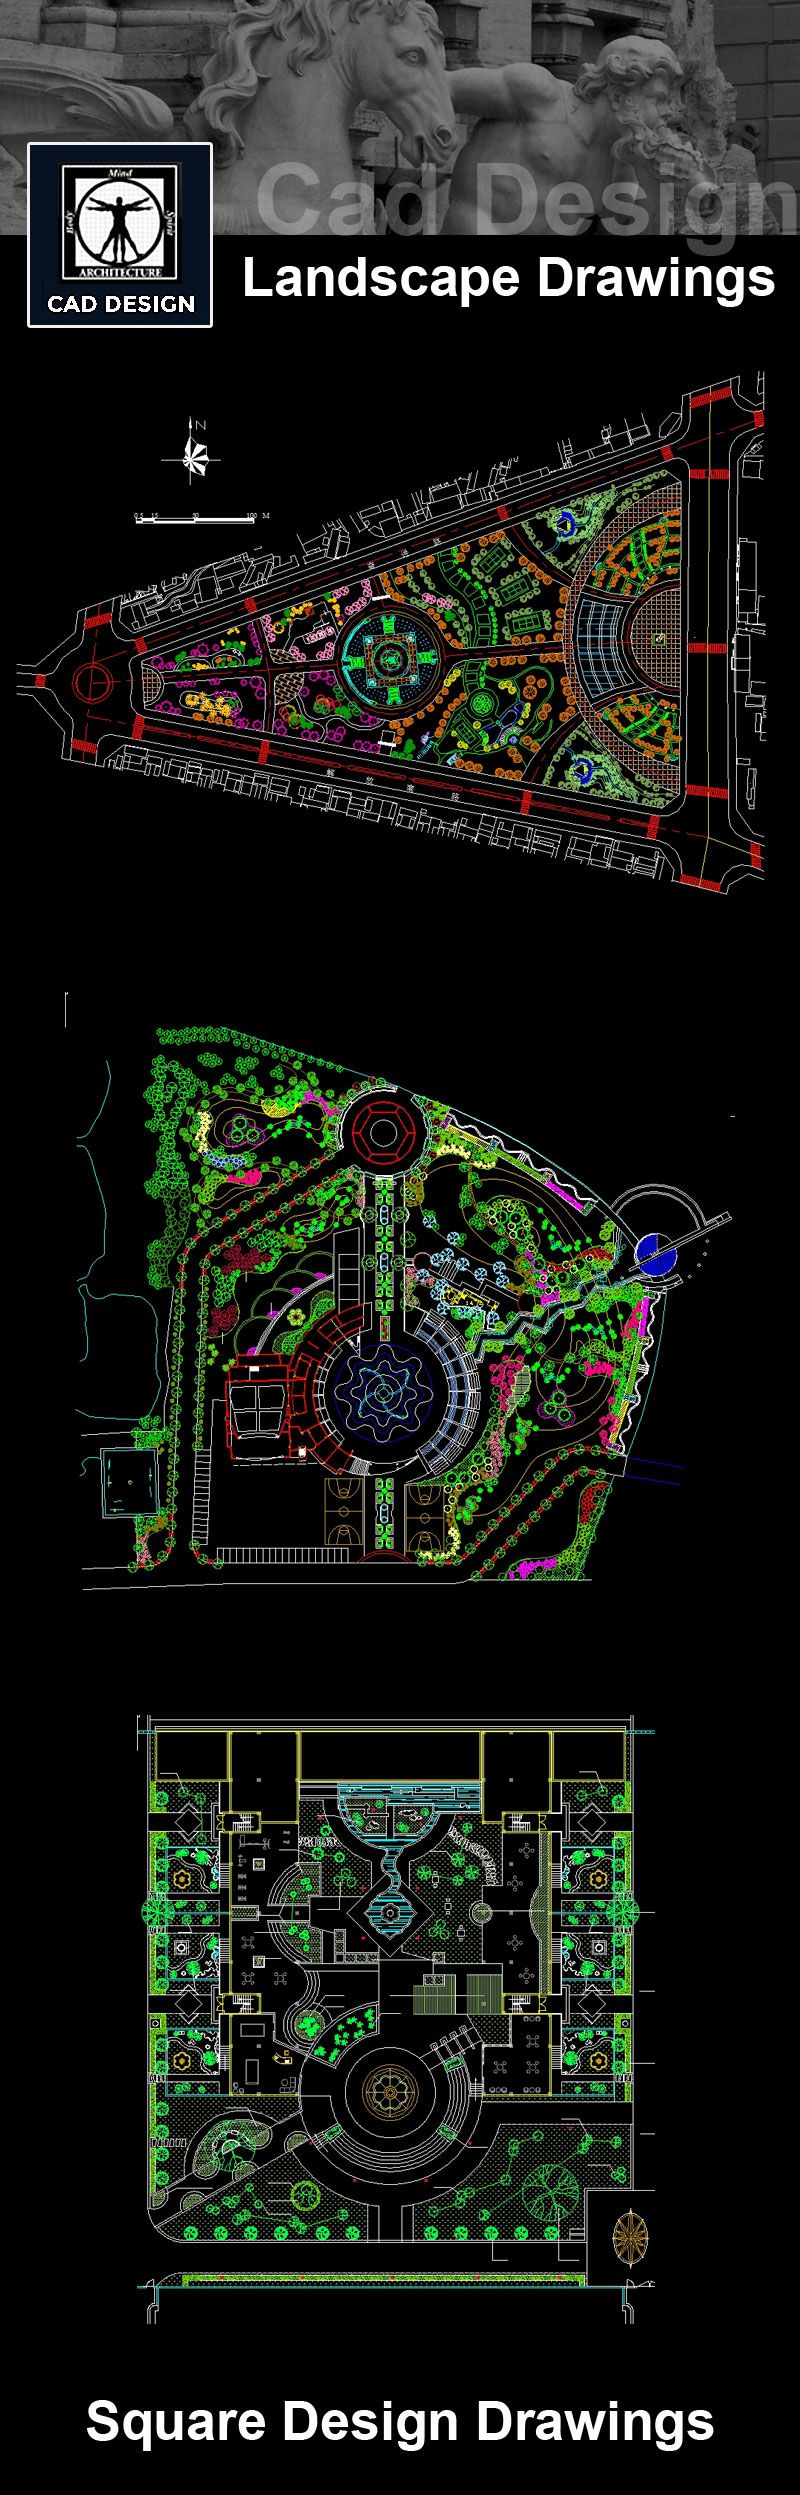 Download urban design planning drawings now https for Autocad landscape architecture